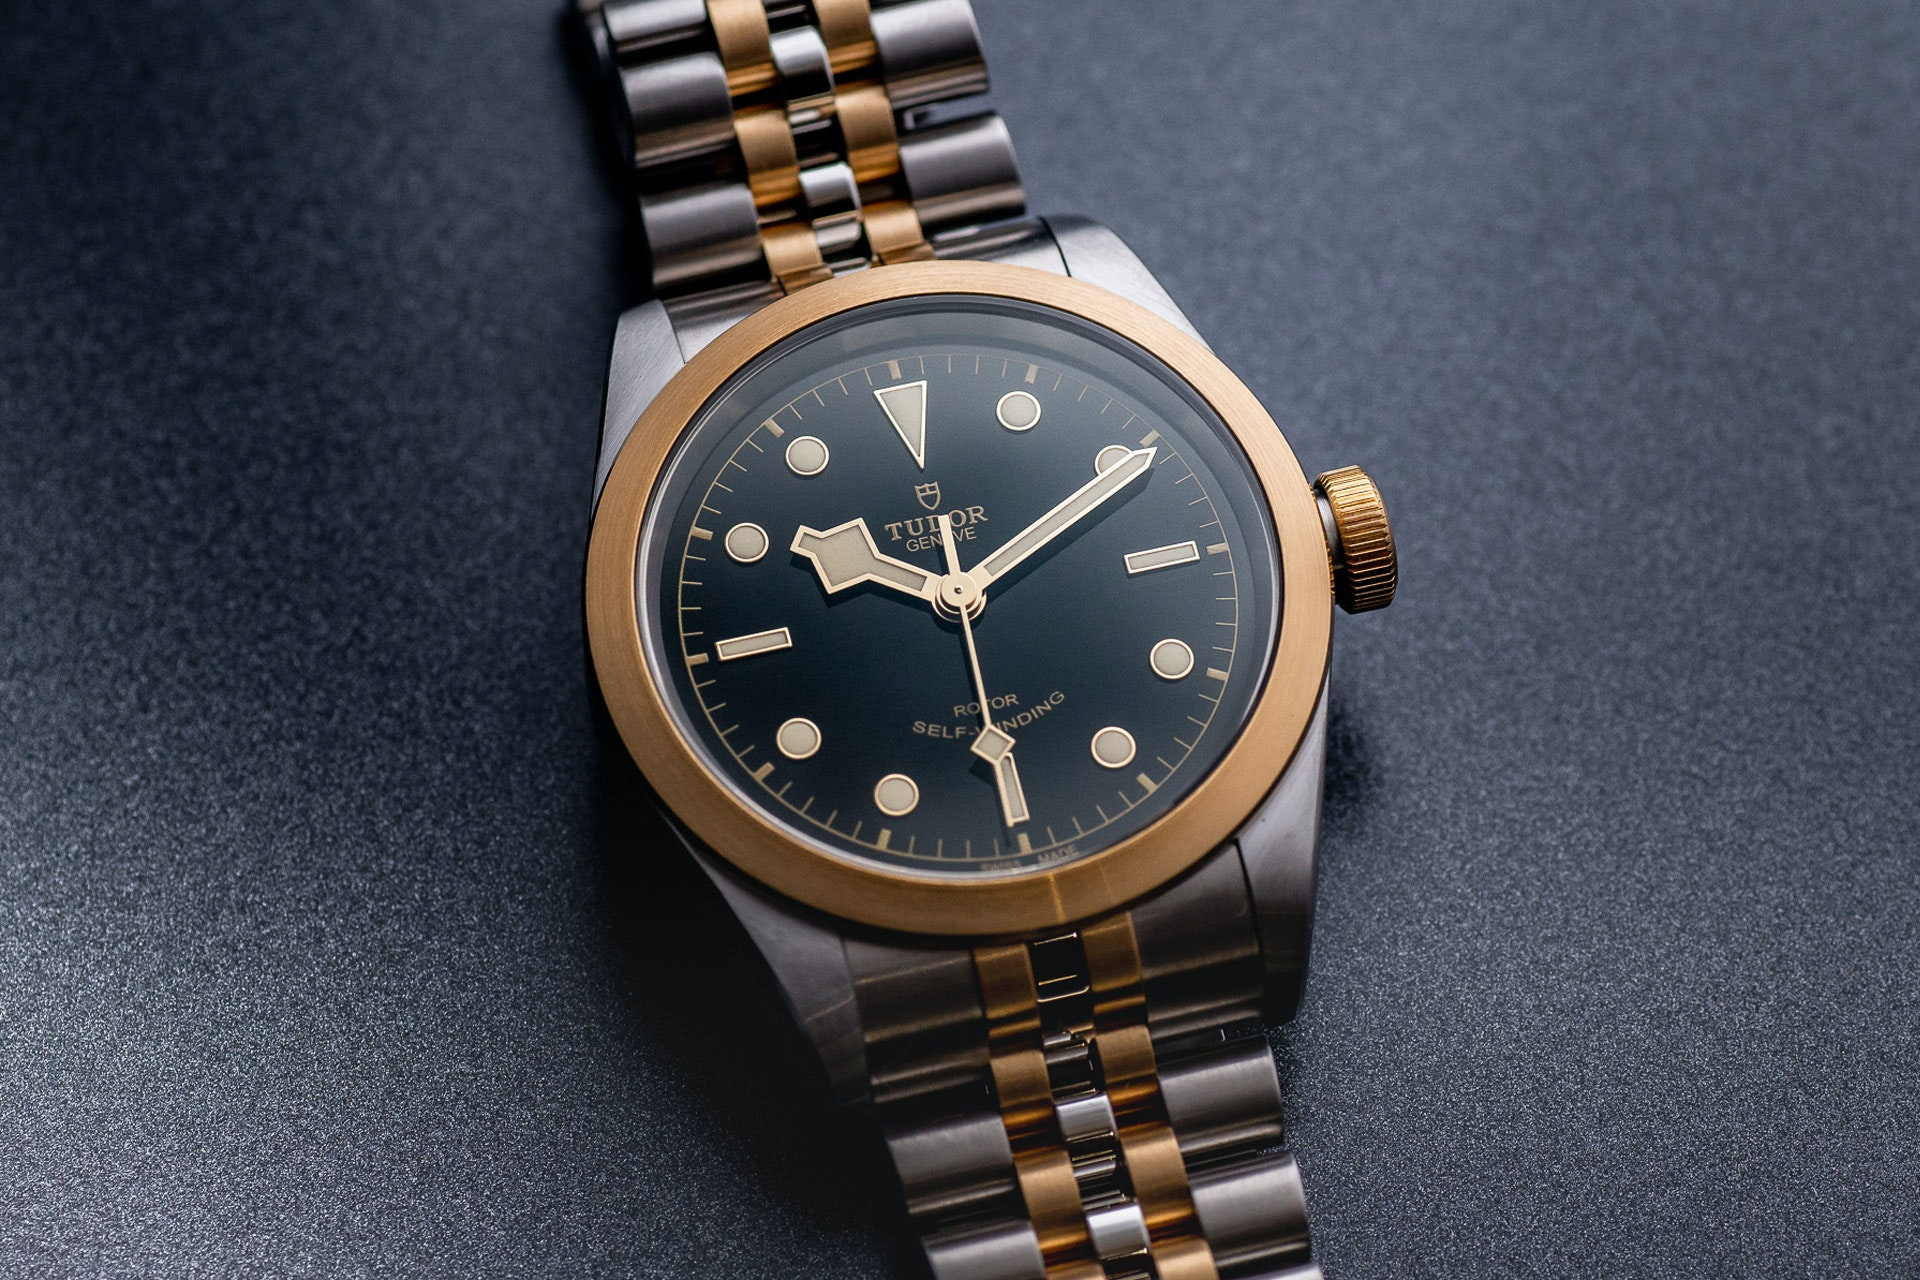 Baselworld 2019: Tudor Black Bay releases at a glance